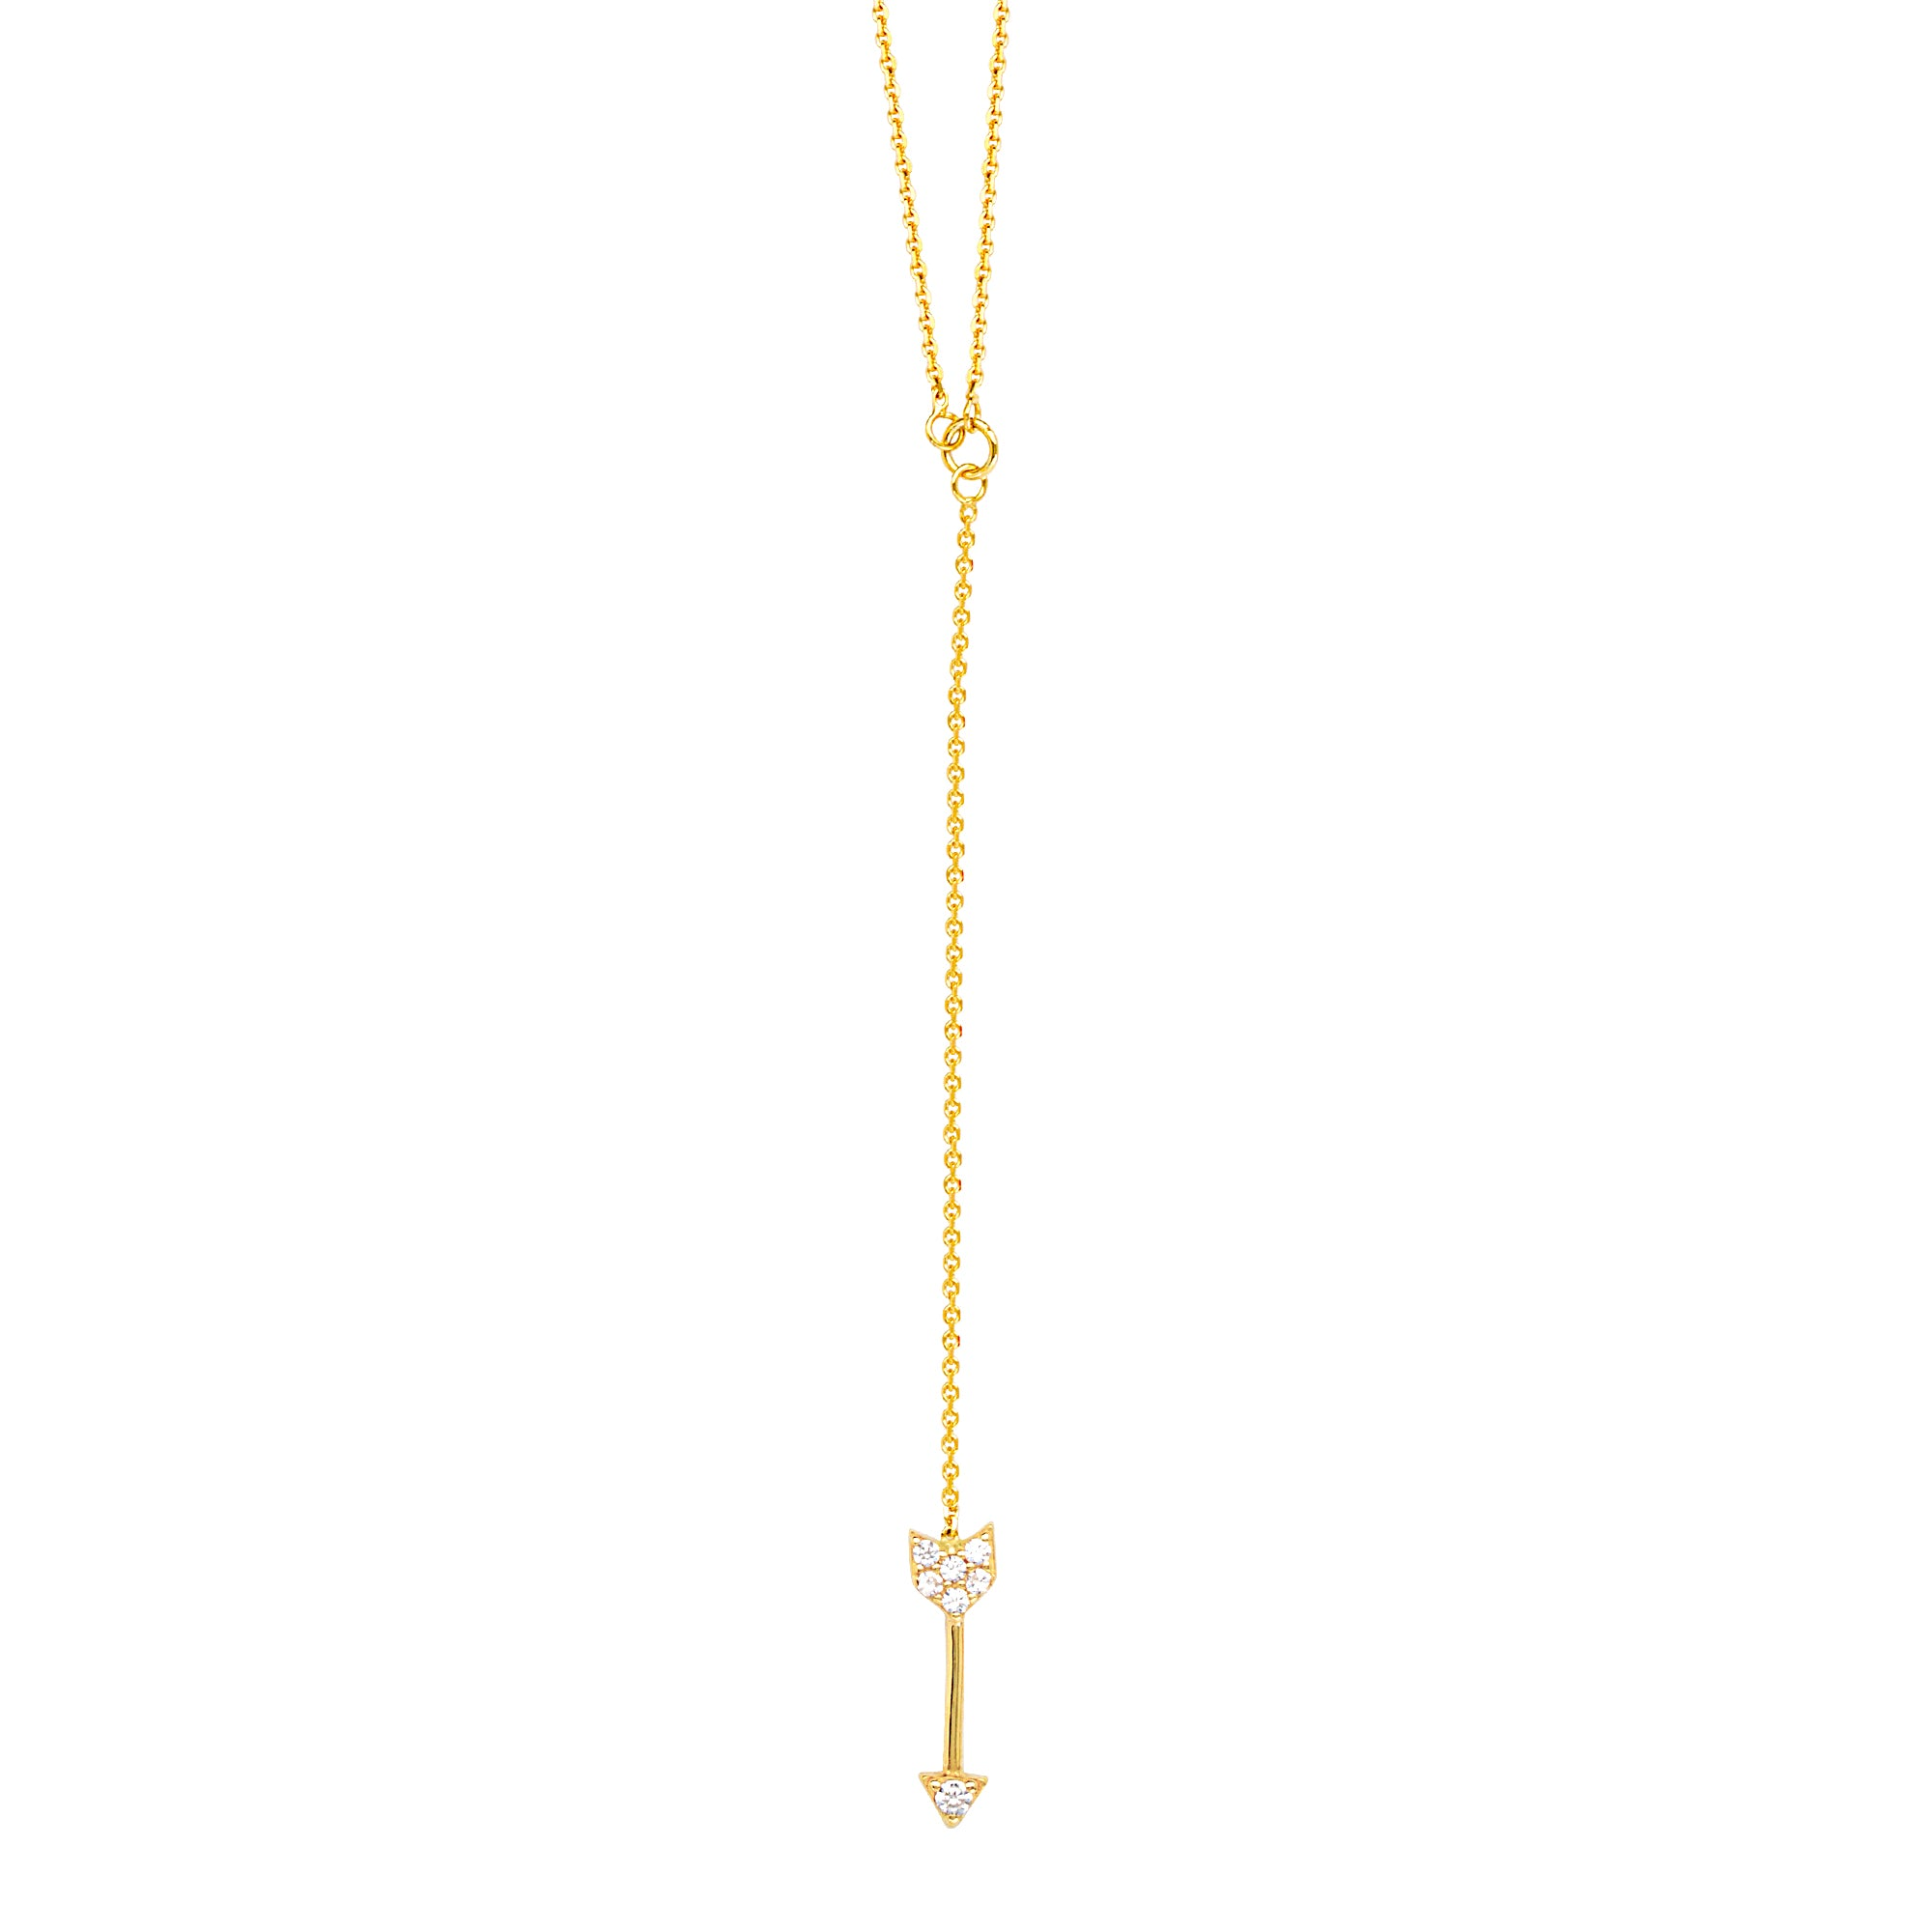 14K Yellow Gold Arrow Lariat Chain Drop Necklace